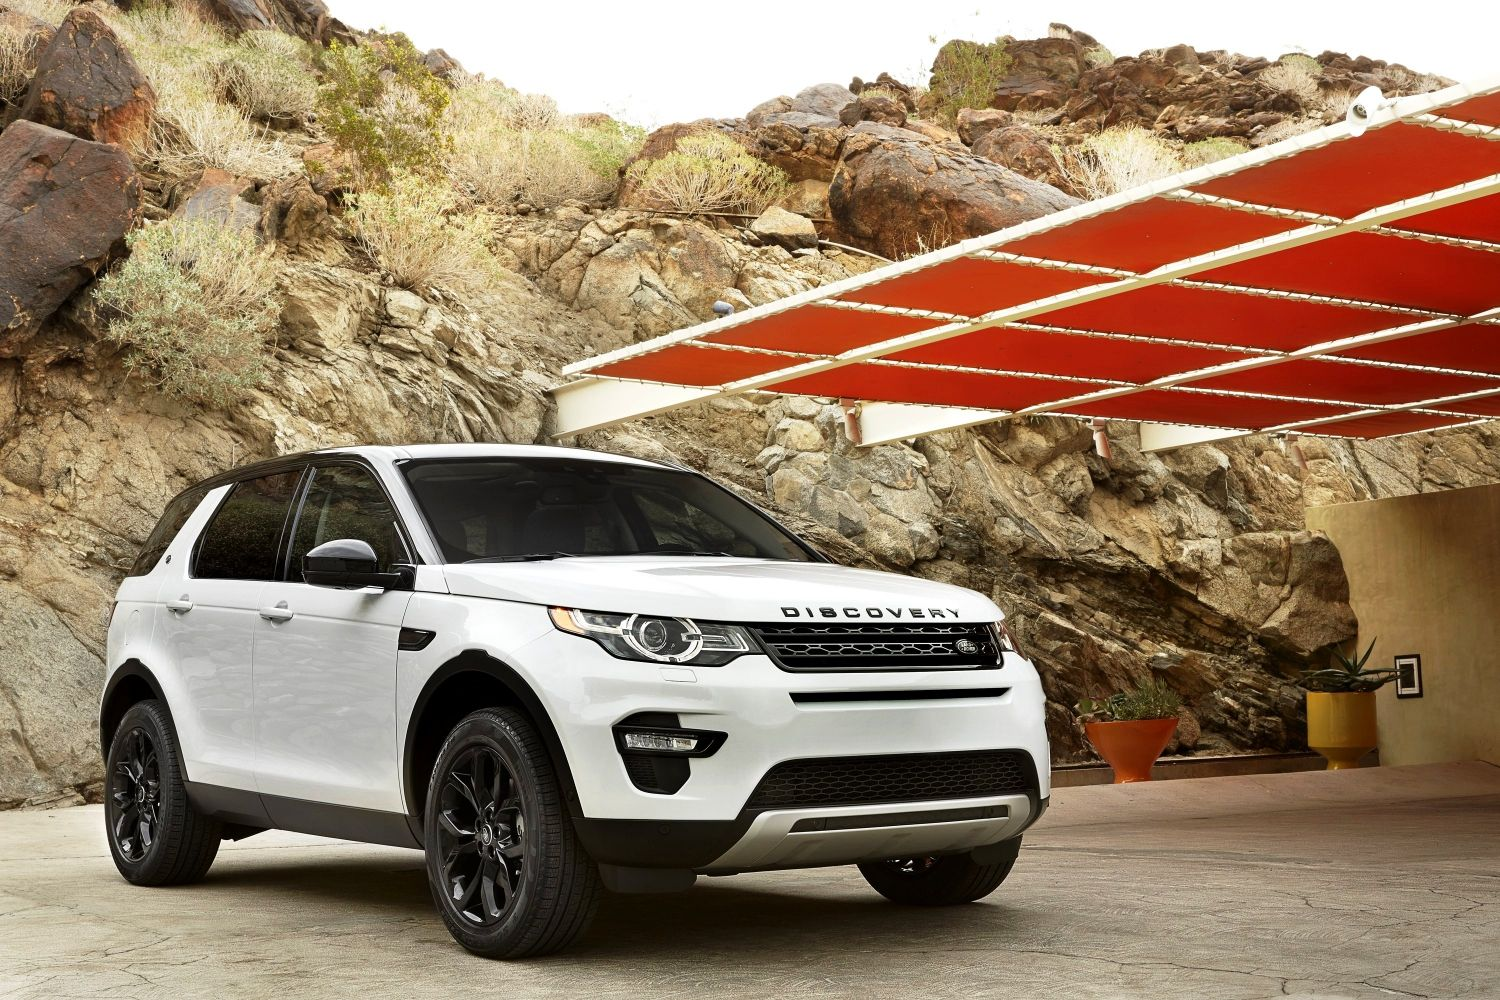 Marvelous Explore Sports Wallpapers, Car Wallpapers, And More! Small Suv With Best Mpg  ...